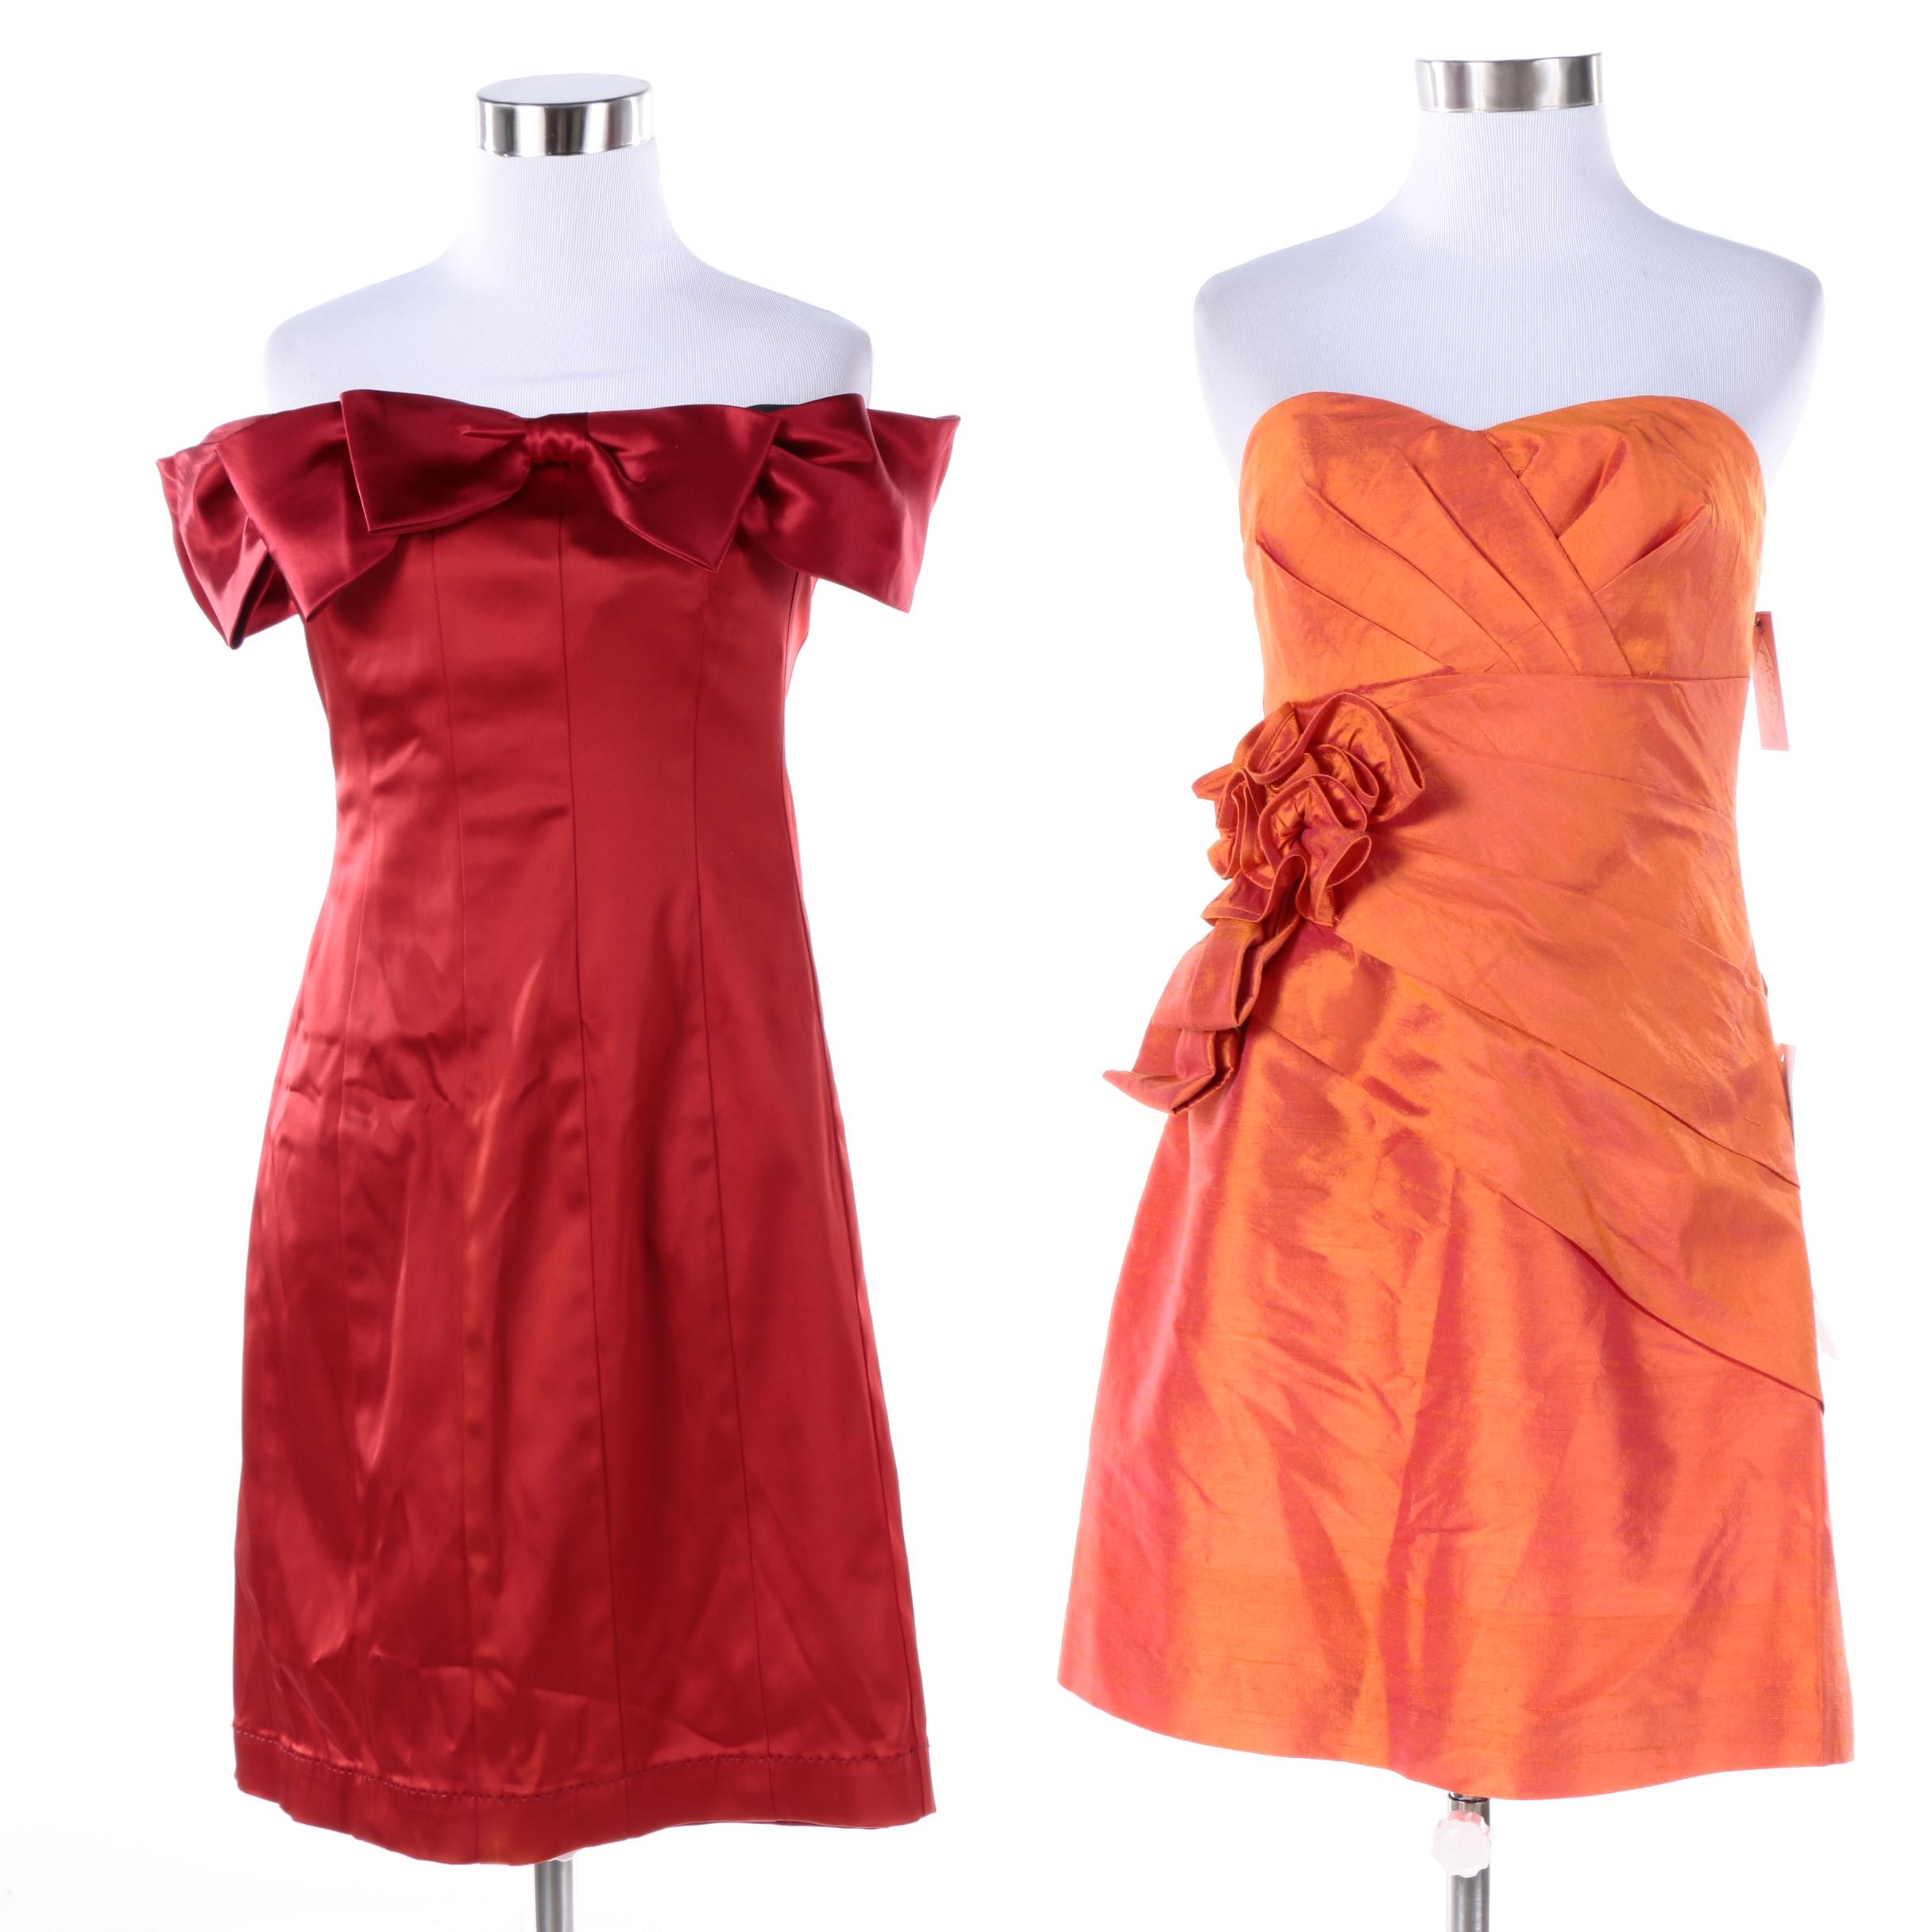 Phoebe Couture Dresses Including Silk